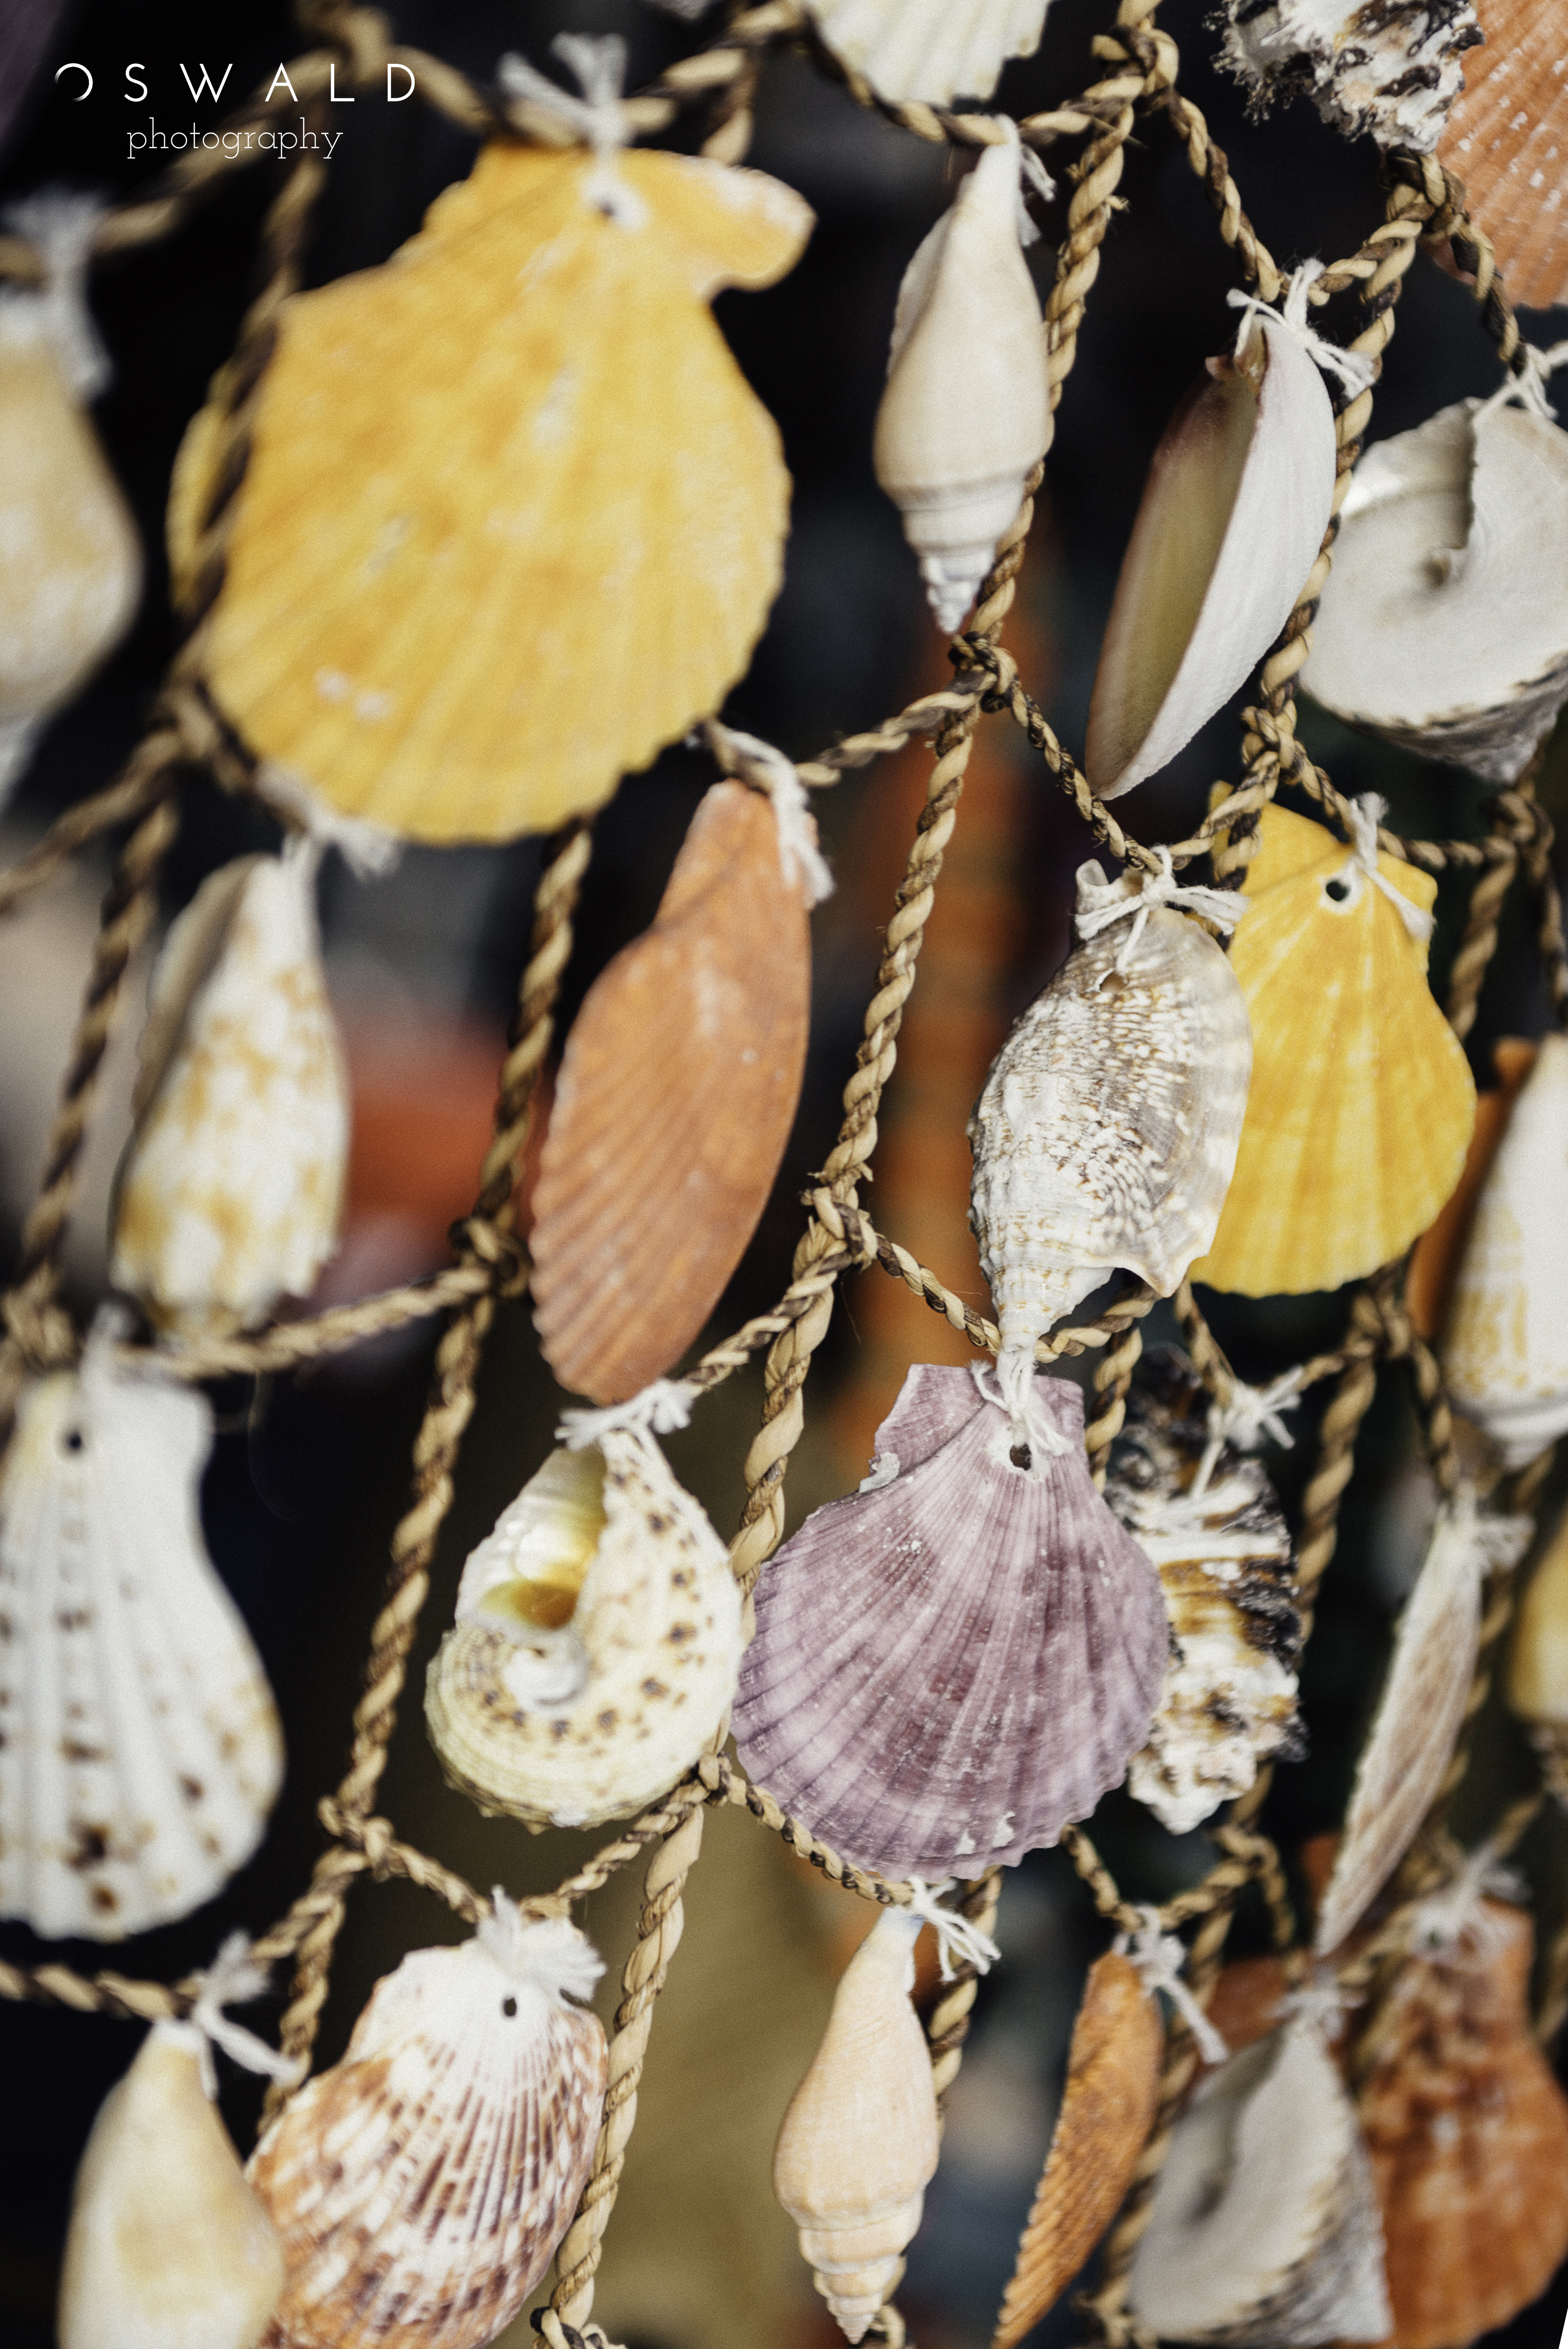 A curtain of vividly colored seashells gathered on Hawaiian beaches dangles from string, giving particular focus to a purple oyster shell.